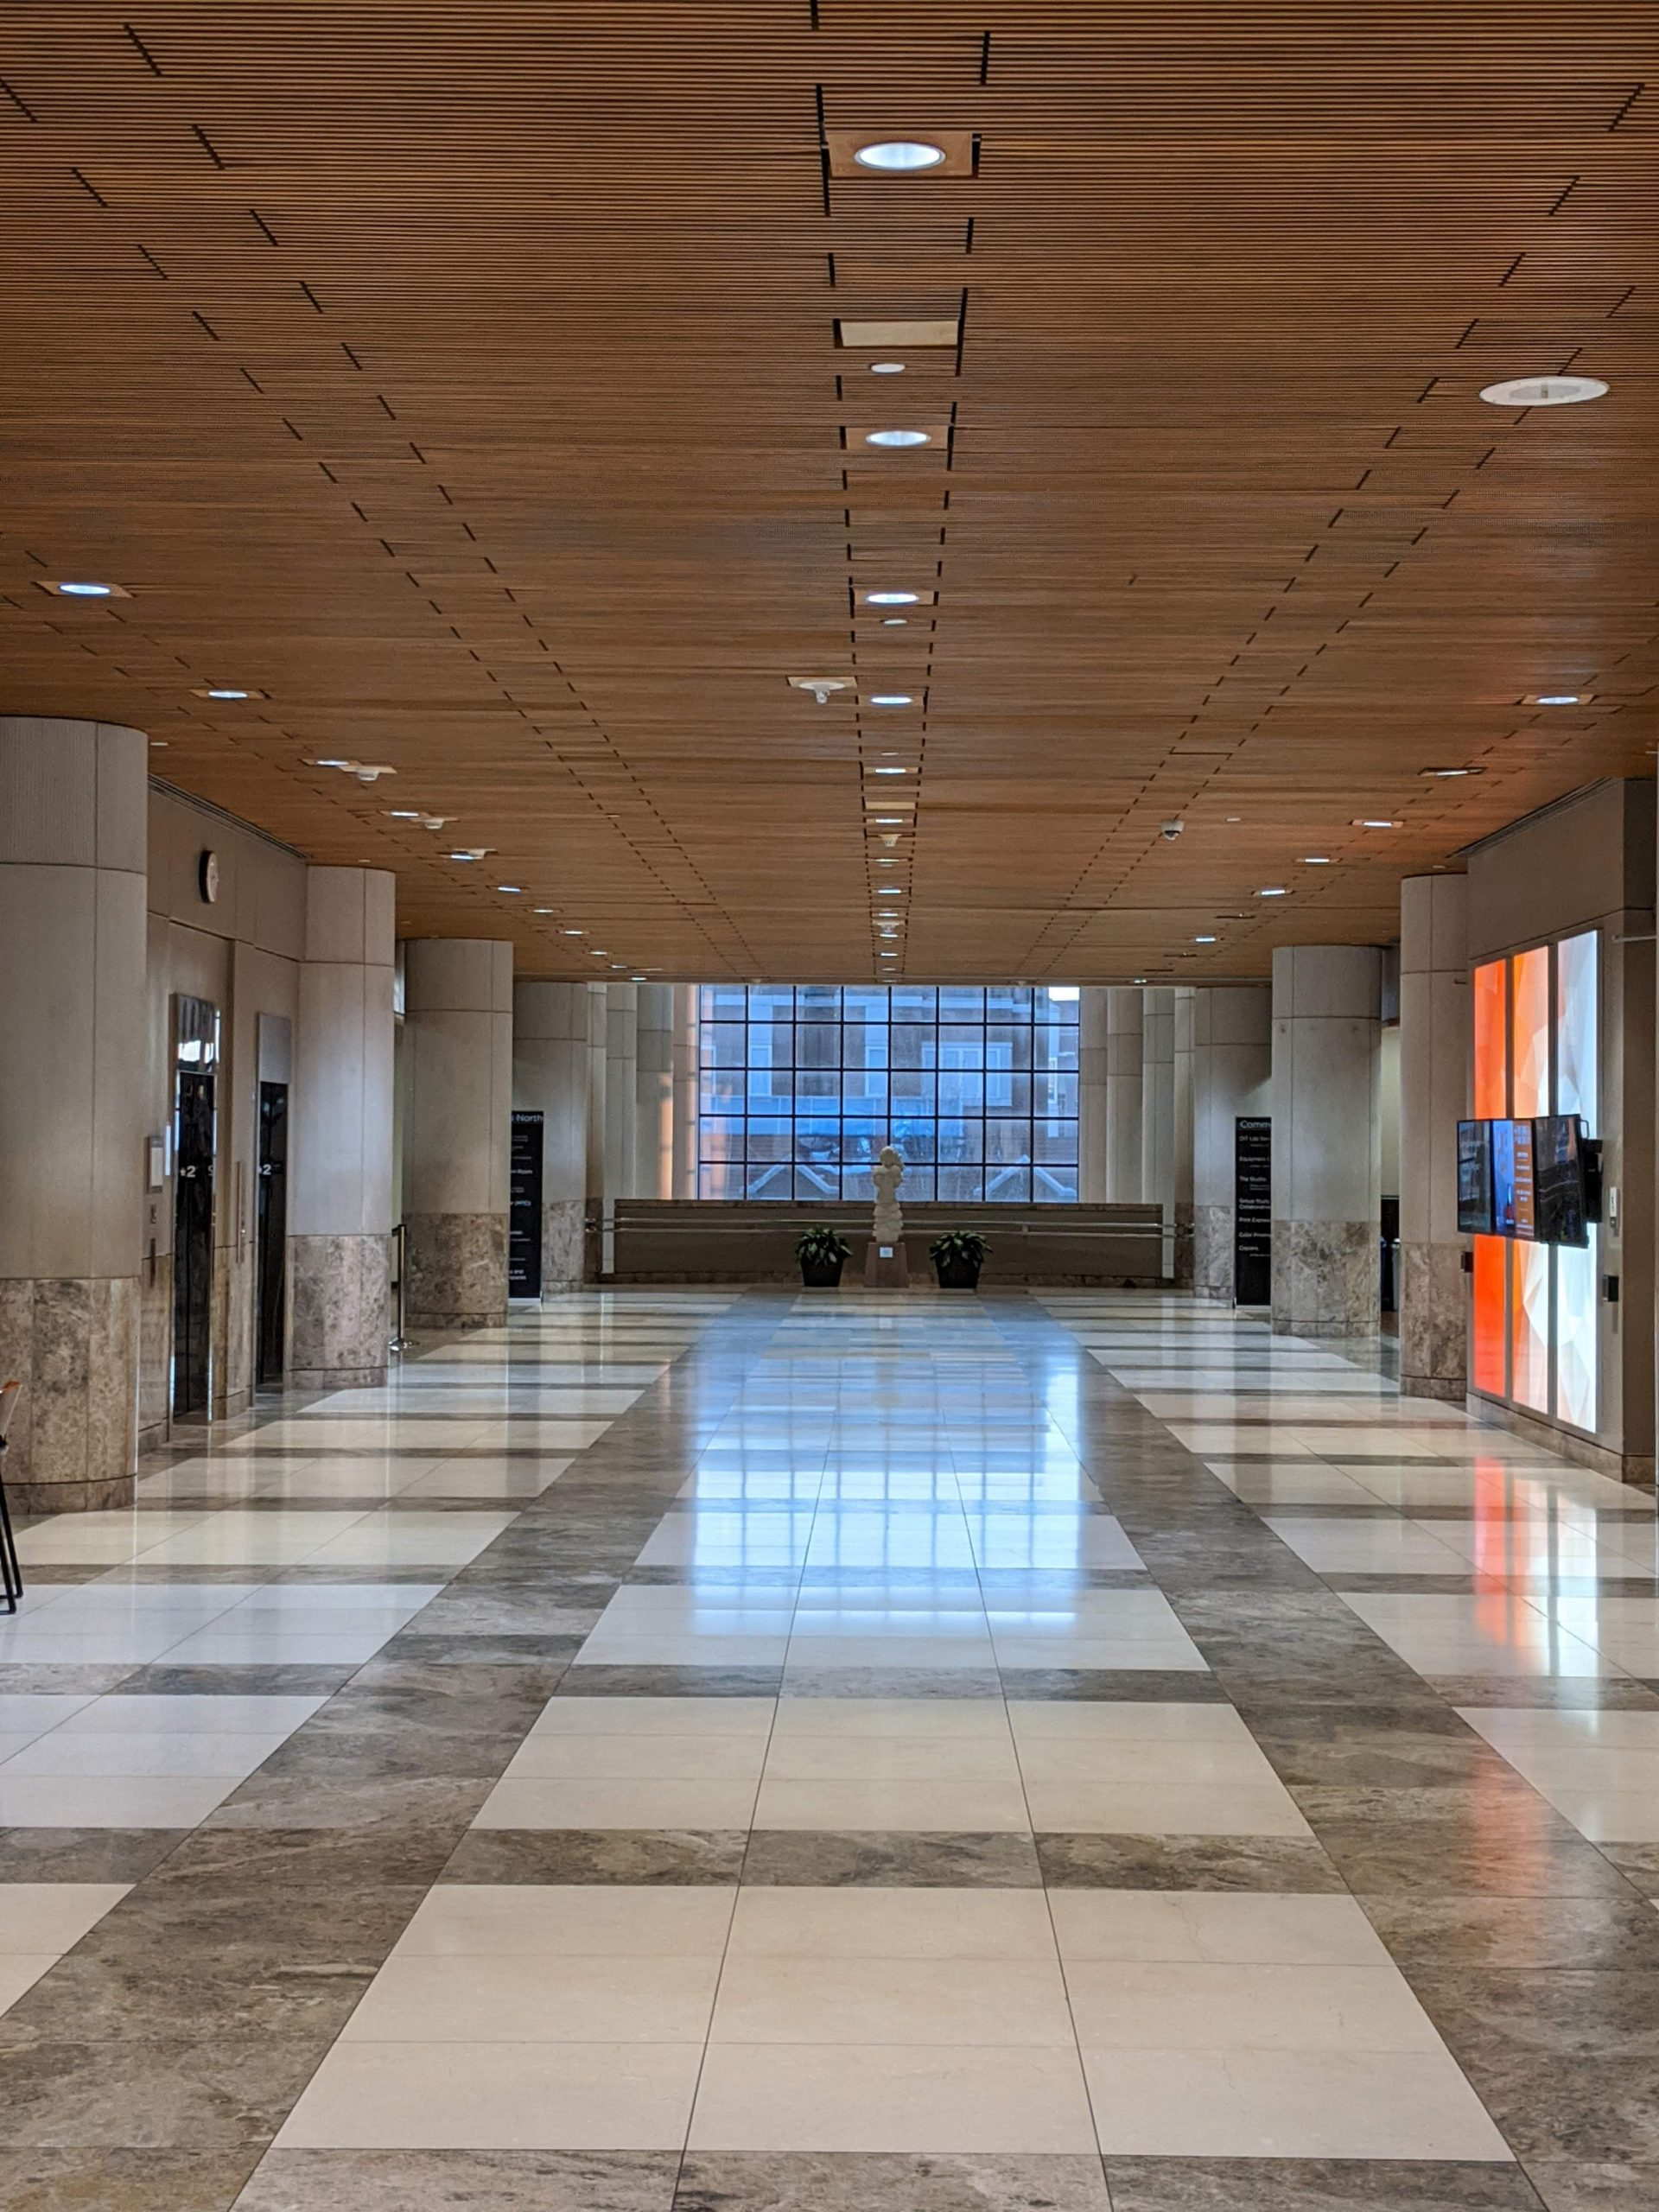 jack e reese galleria in hodges library at ut knoxville